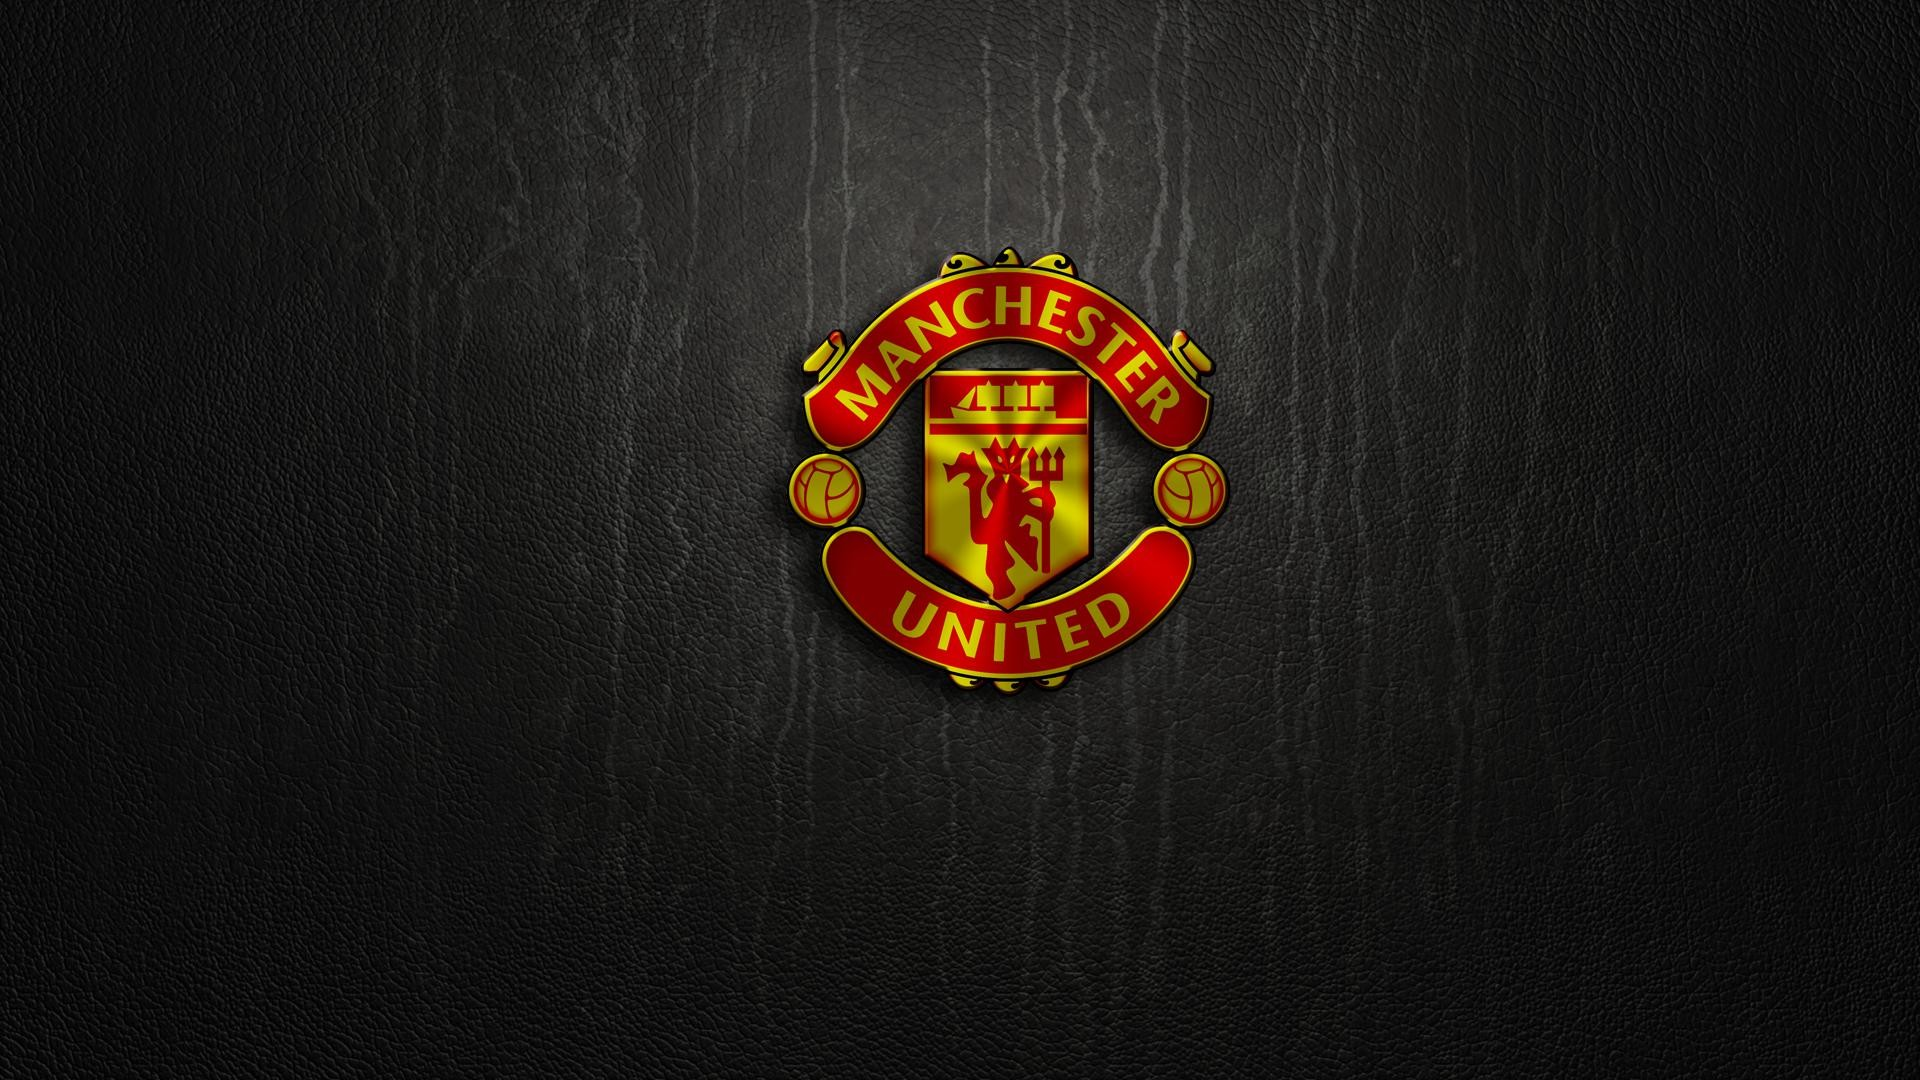 1920x1080 ... Newest Manchester United Logo Wallpapers Daily Update!!! Download right  NOW FREE! Here